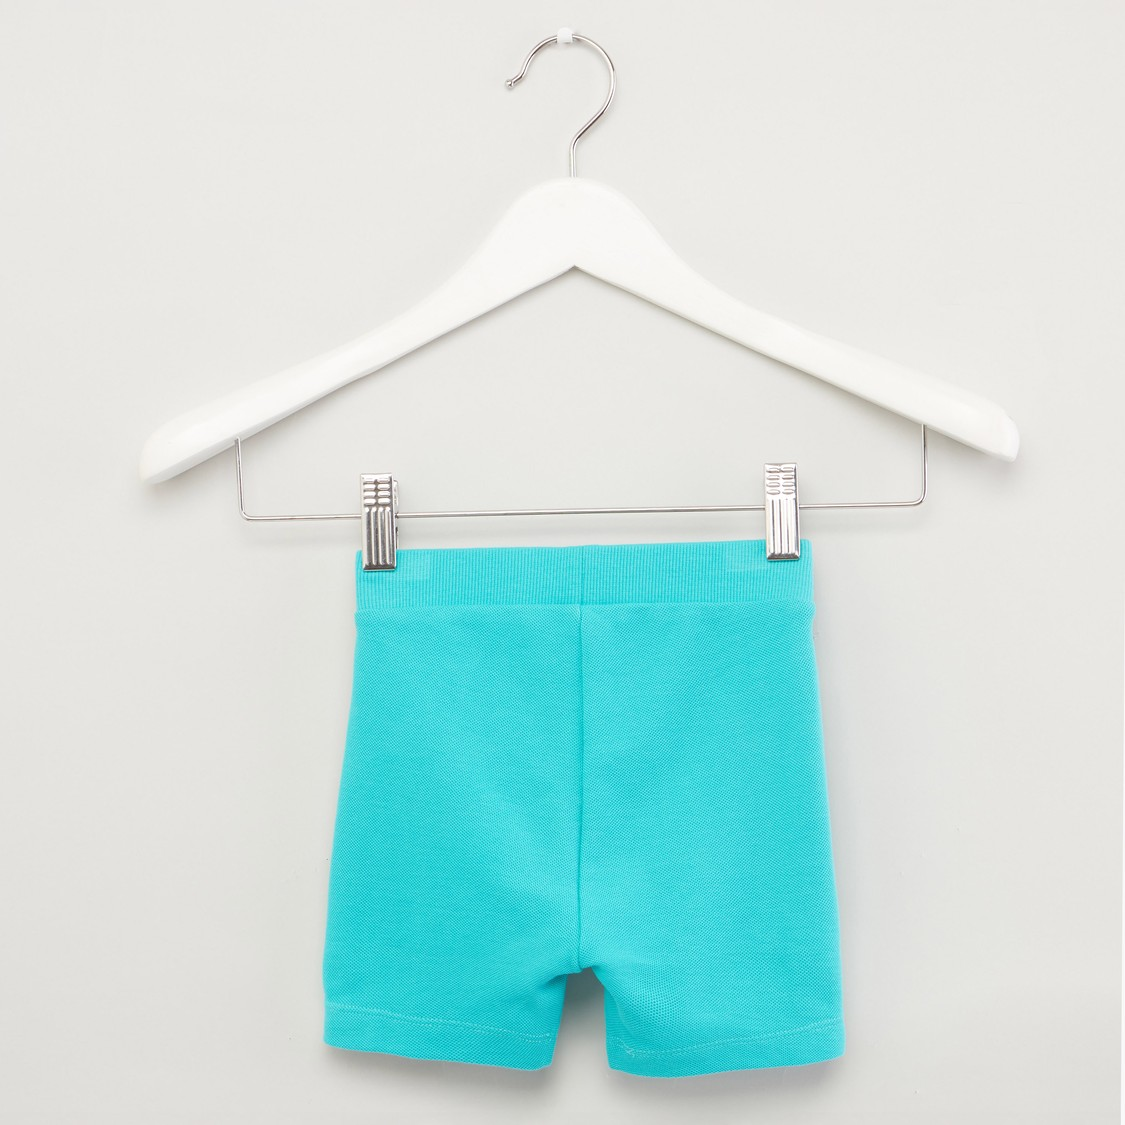 Textured Shorts with Pocket Detail and Drawstring